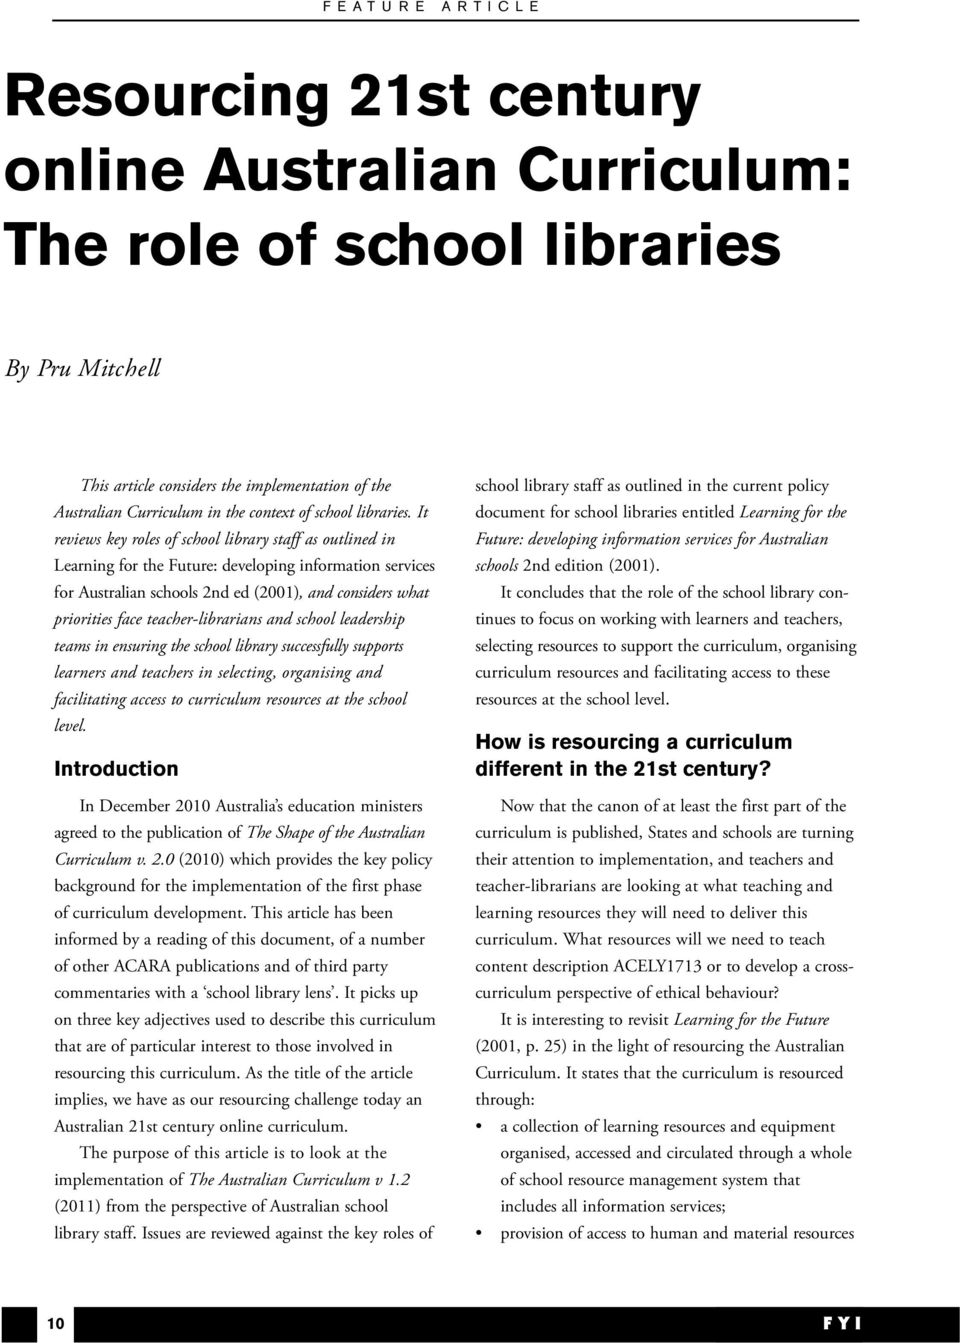 It reviews key roles of school library staff as outlined in Learning for the Future: developing information services for Australian schools 2nd ed (2001), and considers what priorities face